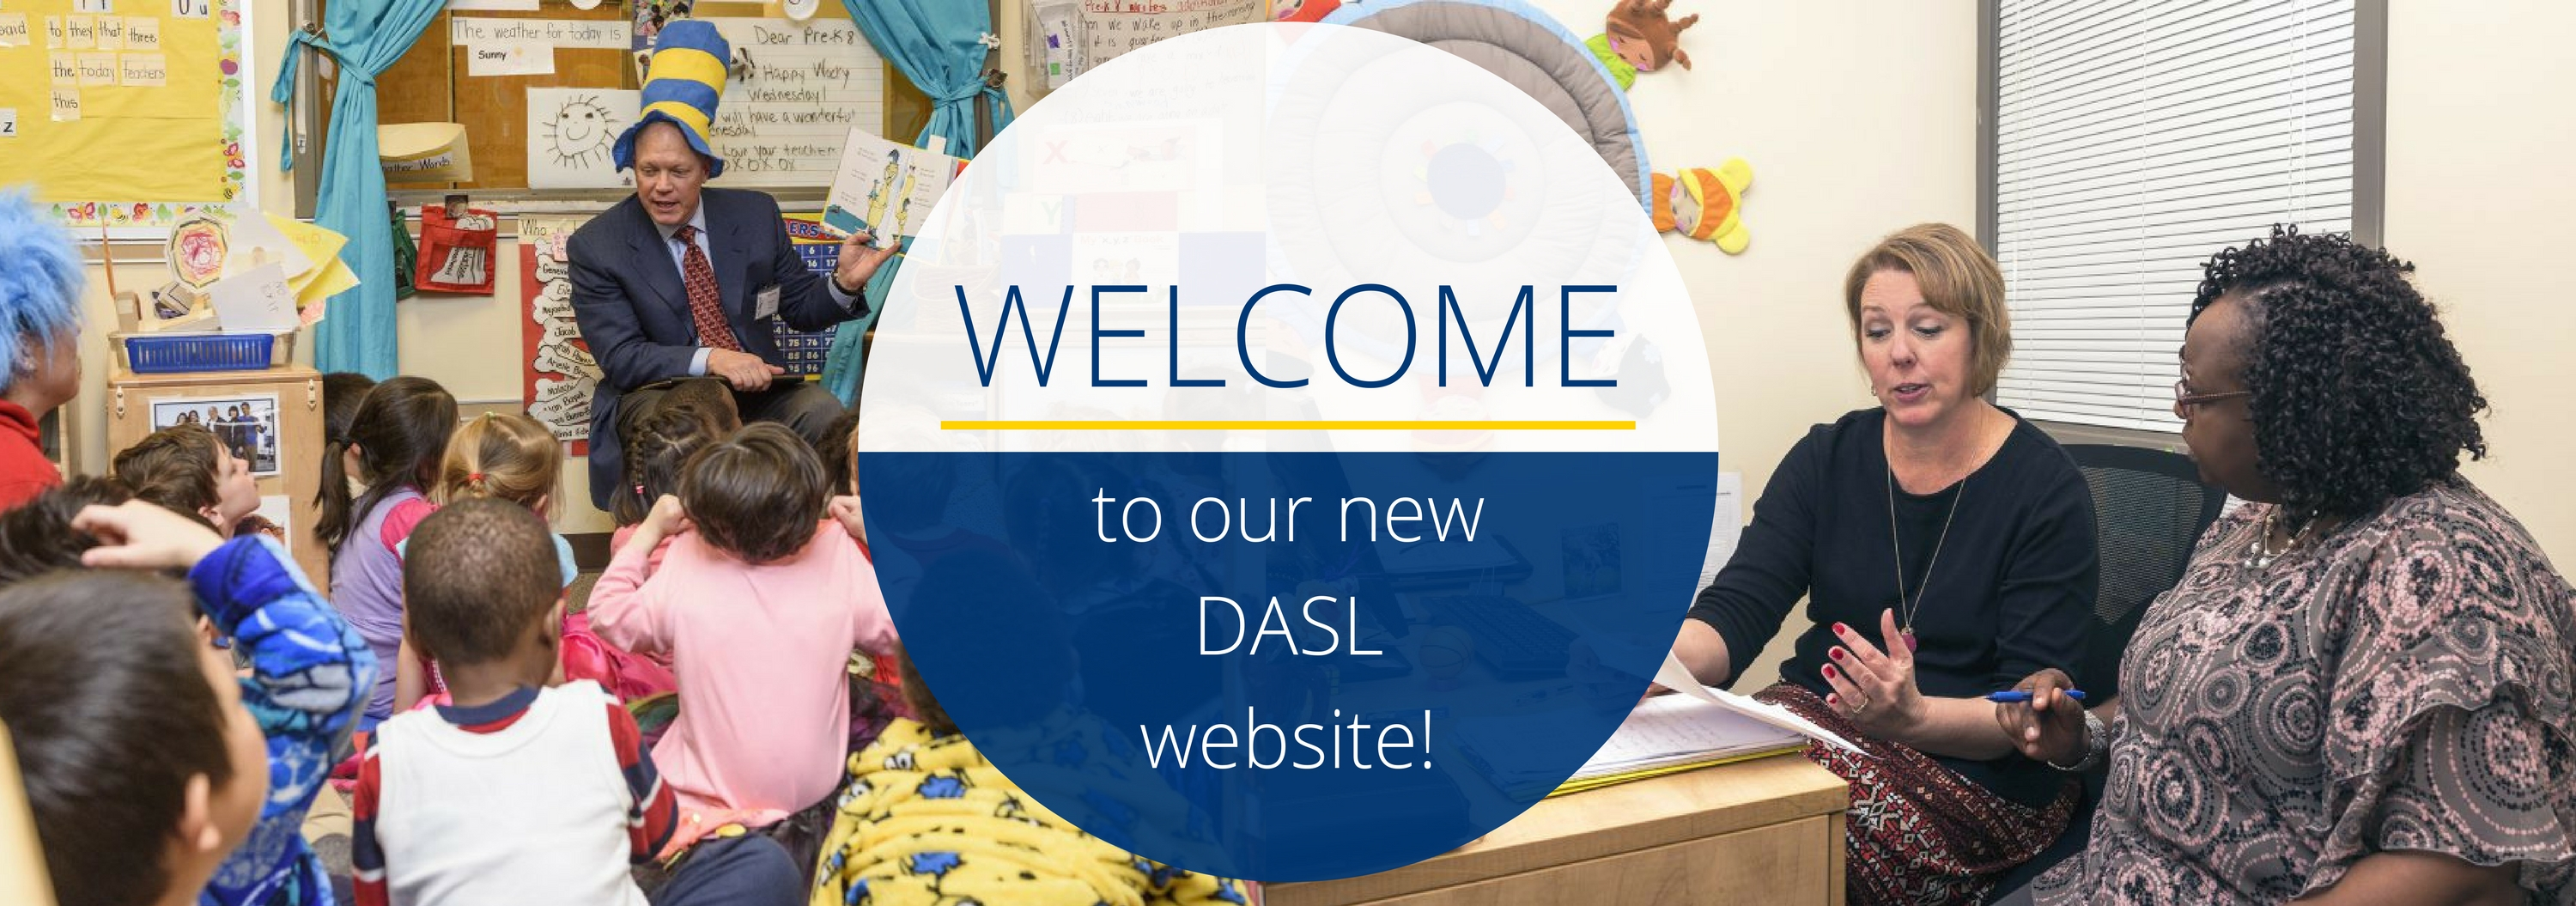 Welcome to new DASL website